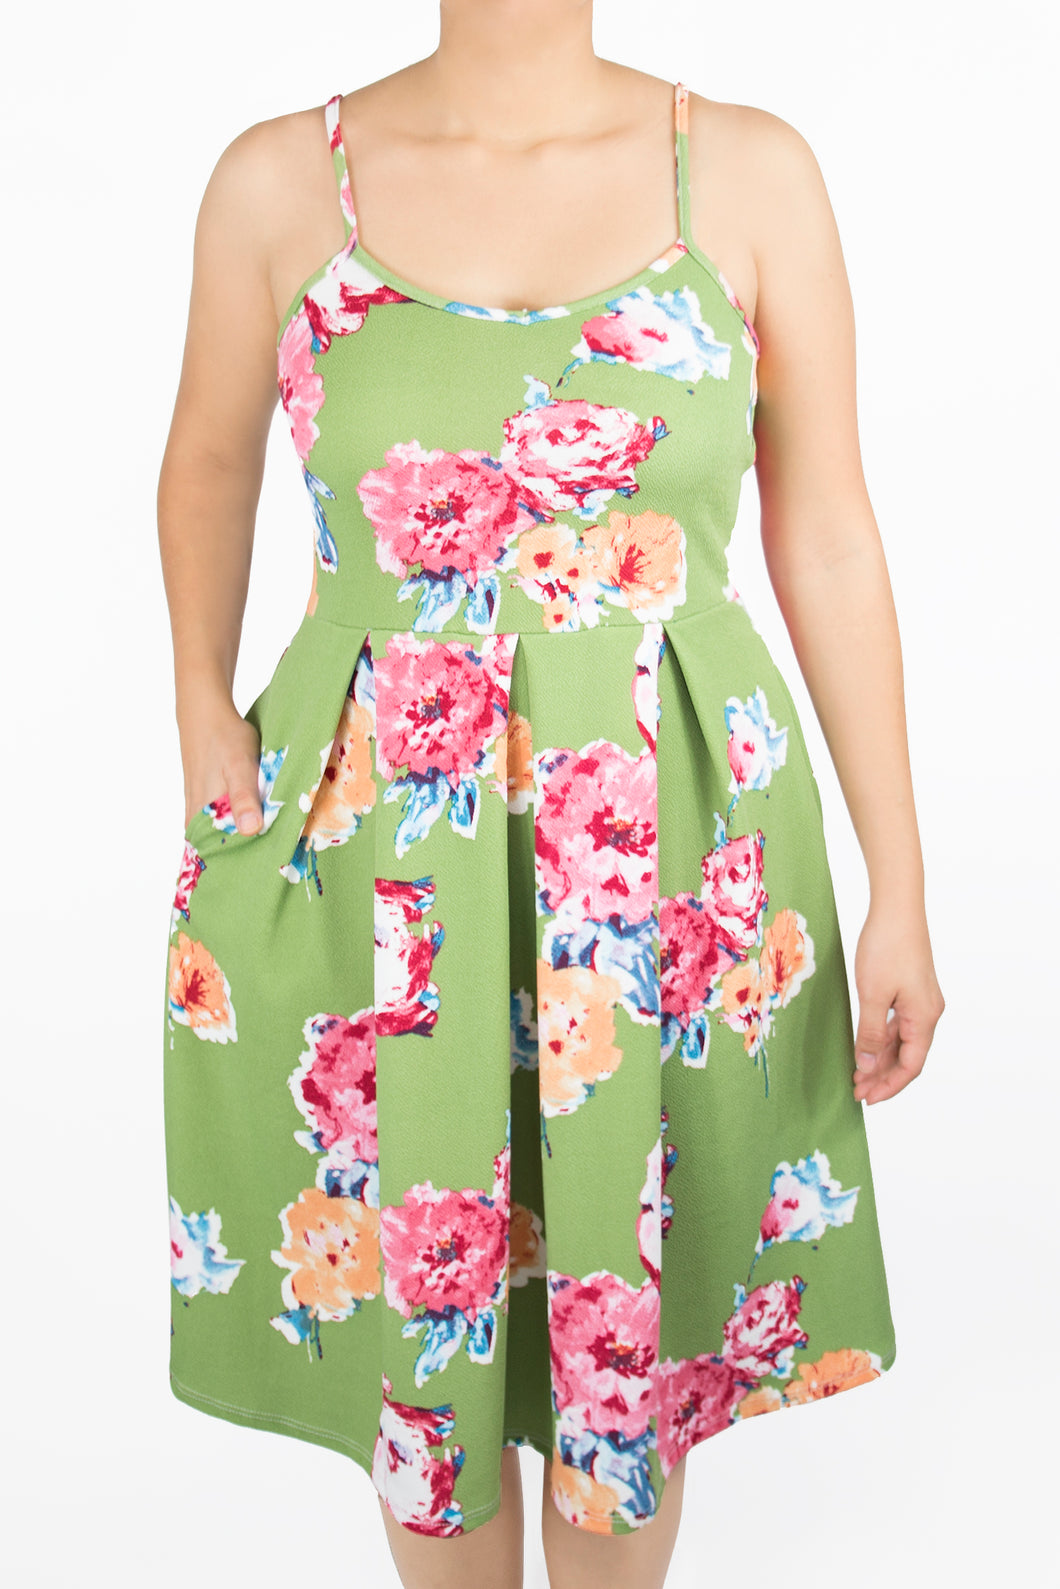 Clover Dress - Large - Light Green Floral